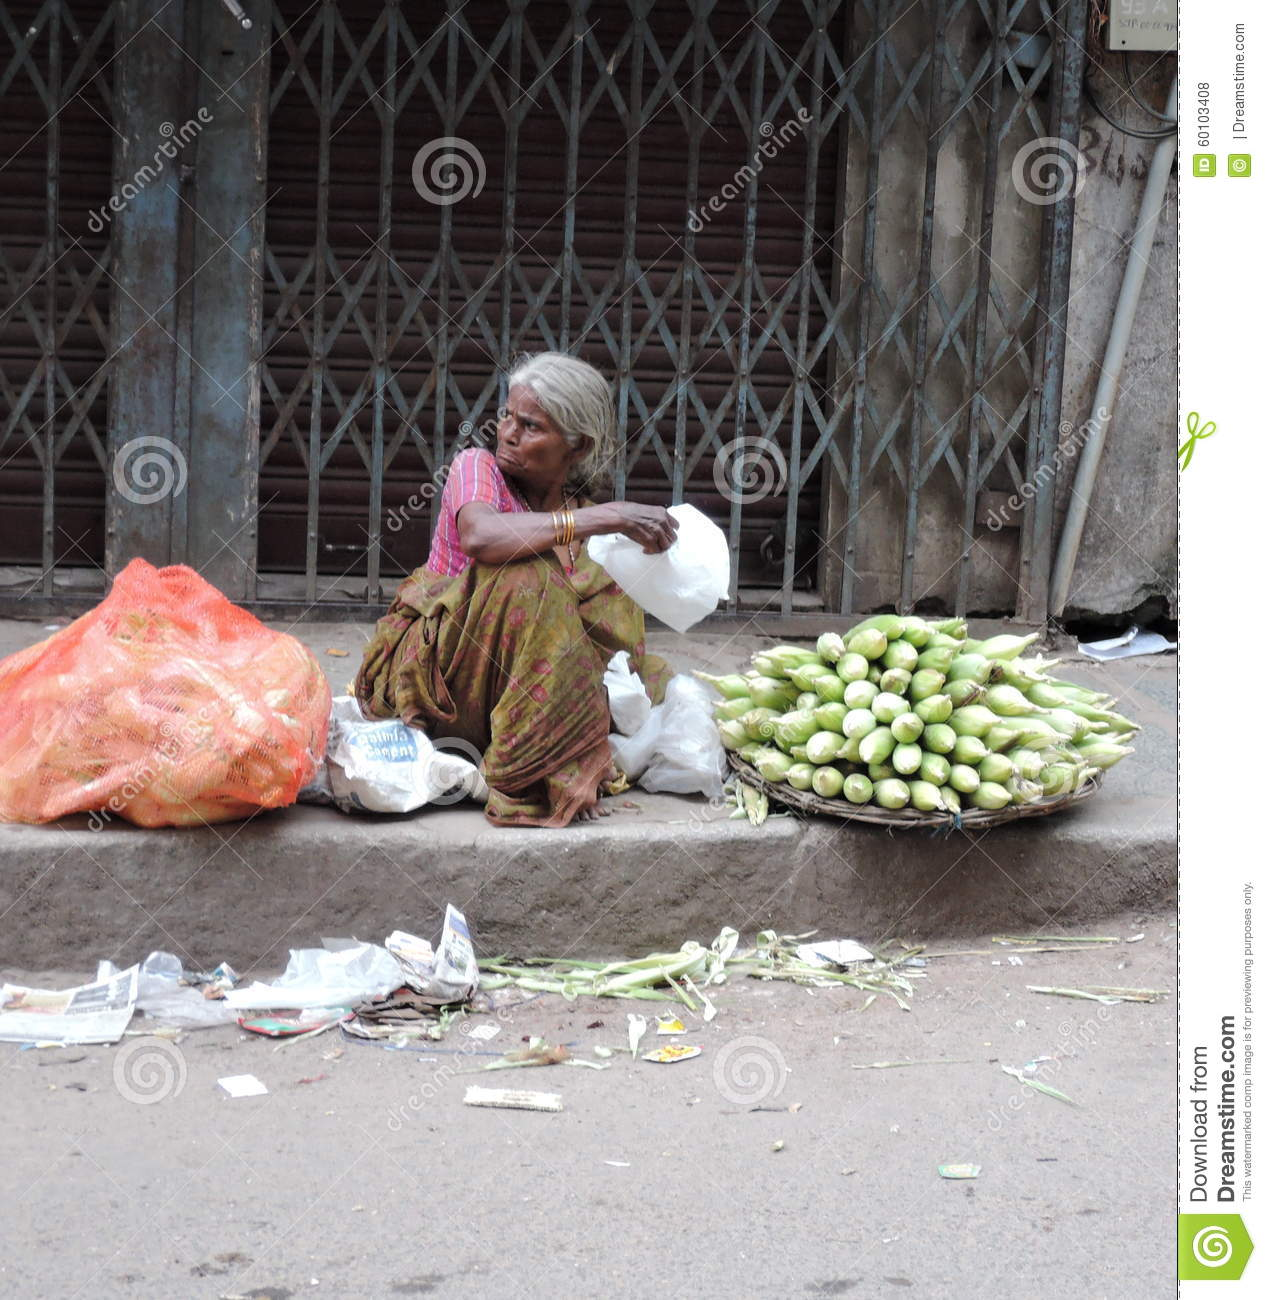 Disabled Bangalore India September 27 2015 This Photo Of Poor Old Woman Selling Corn Depicts Poor Economic And Inhuman Working Conditions Of People Living In Dreamstimecom Poor Old Woman Selling Corn In The Streets Editorial Stock Photo